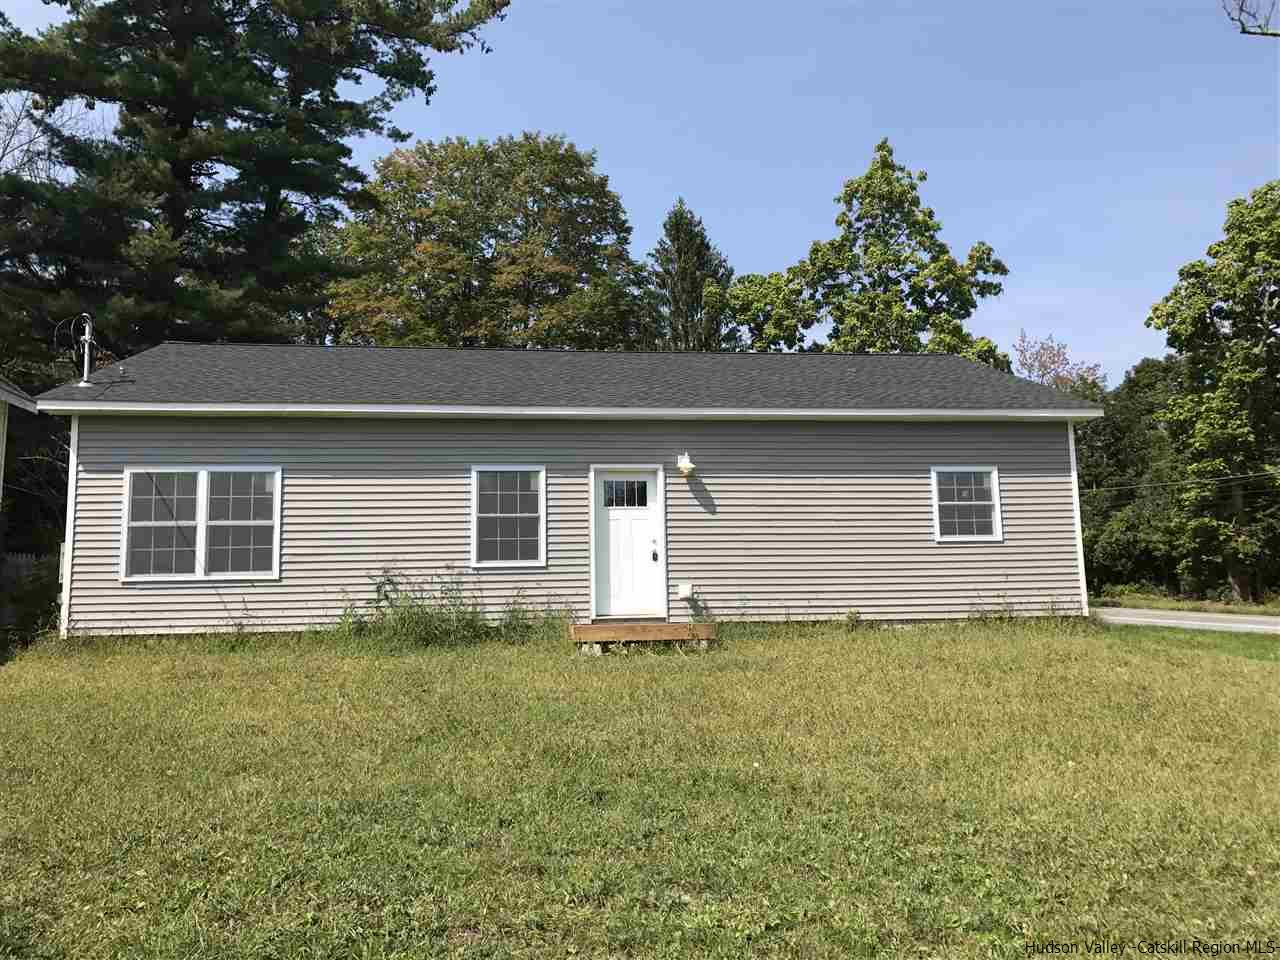 Single Family Home for Sale at 2 Robins Circle 2 Robins Circle Bullville, New York 10915 United States